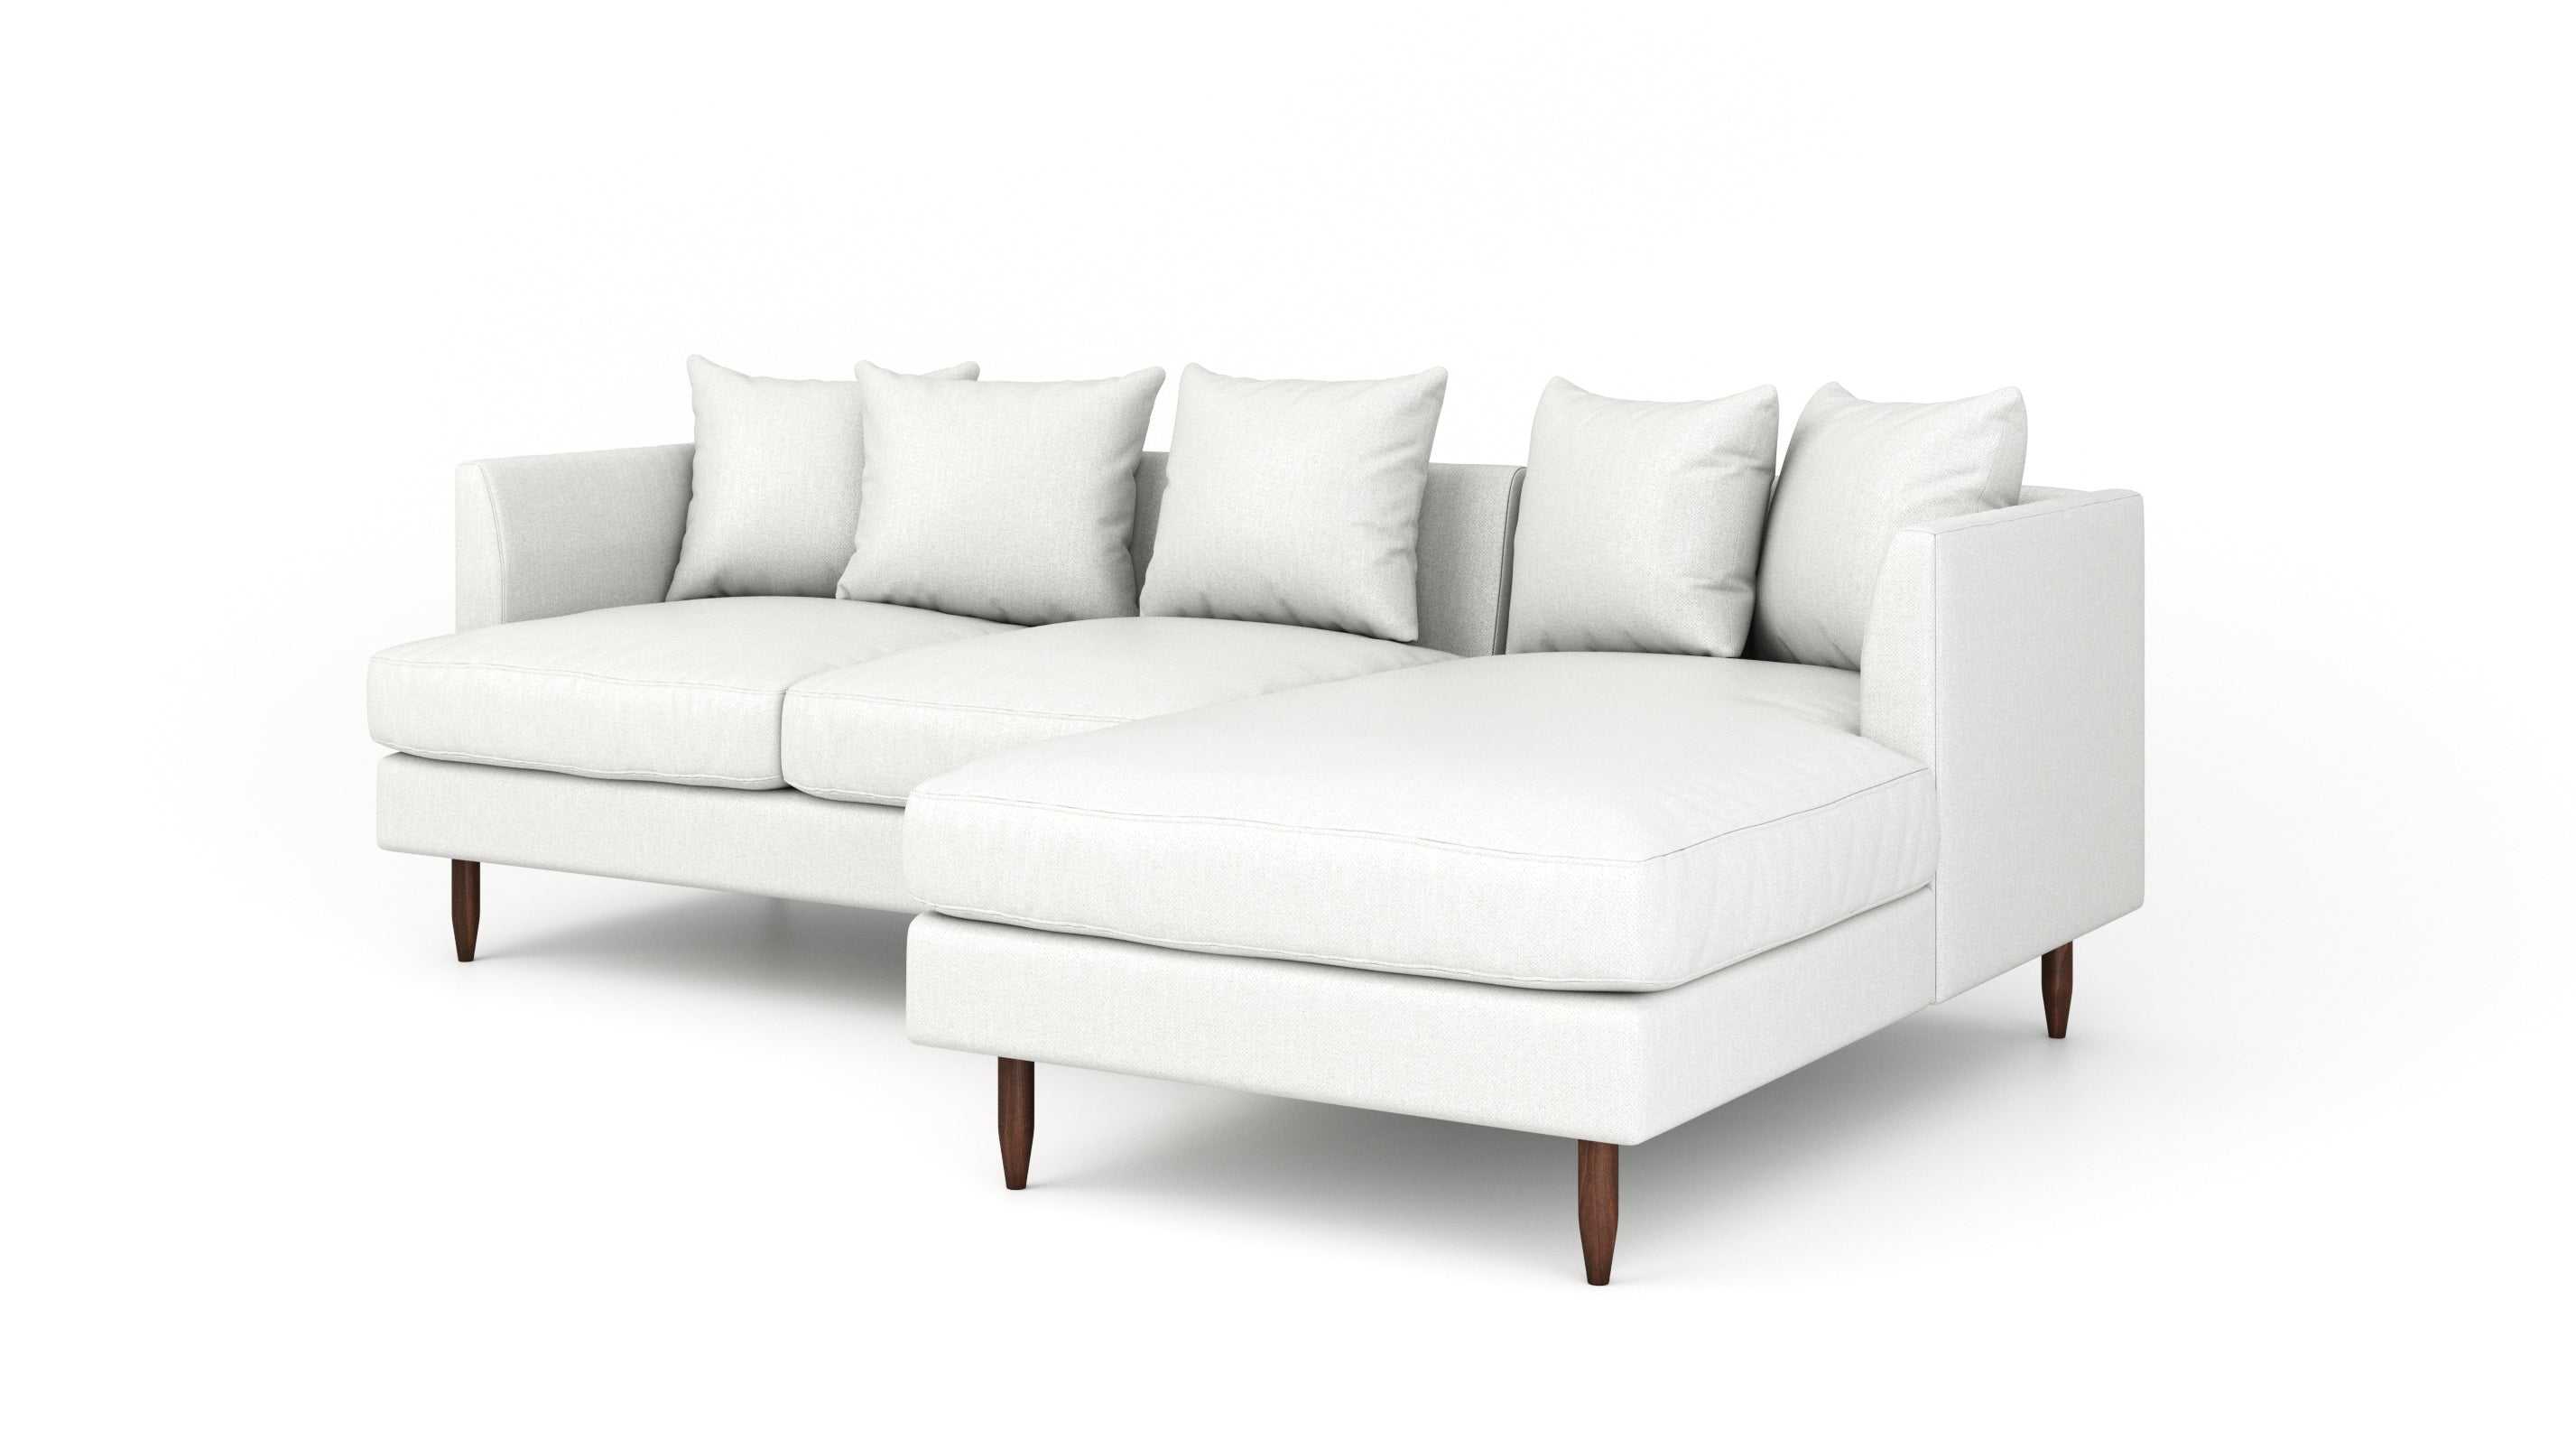 OG Crowd Pleaser Sofa With Chaise